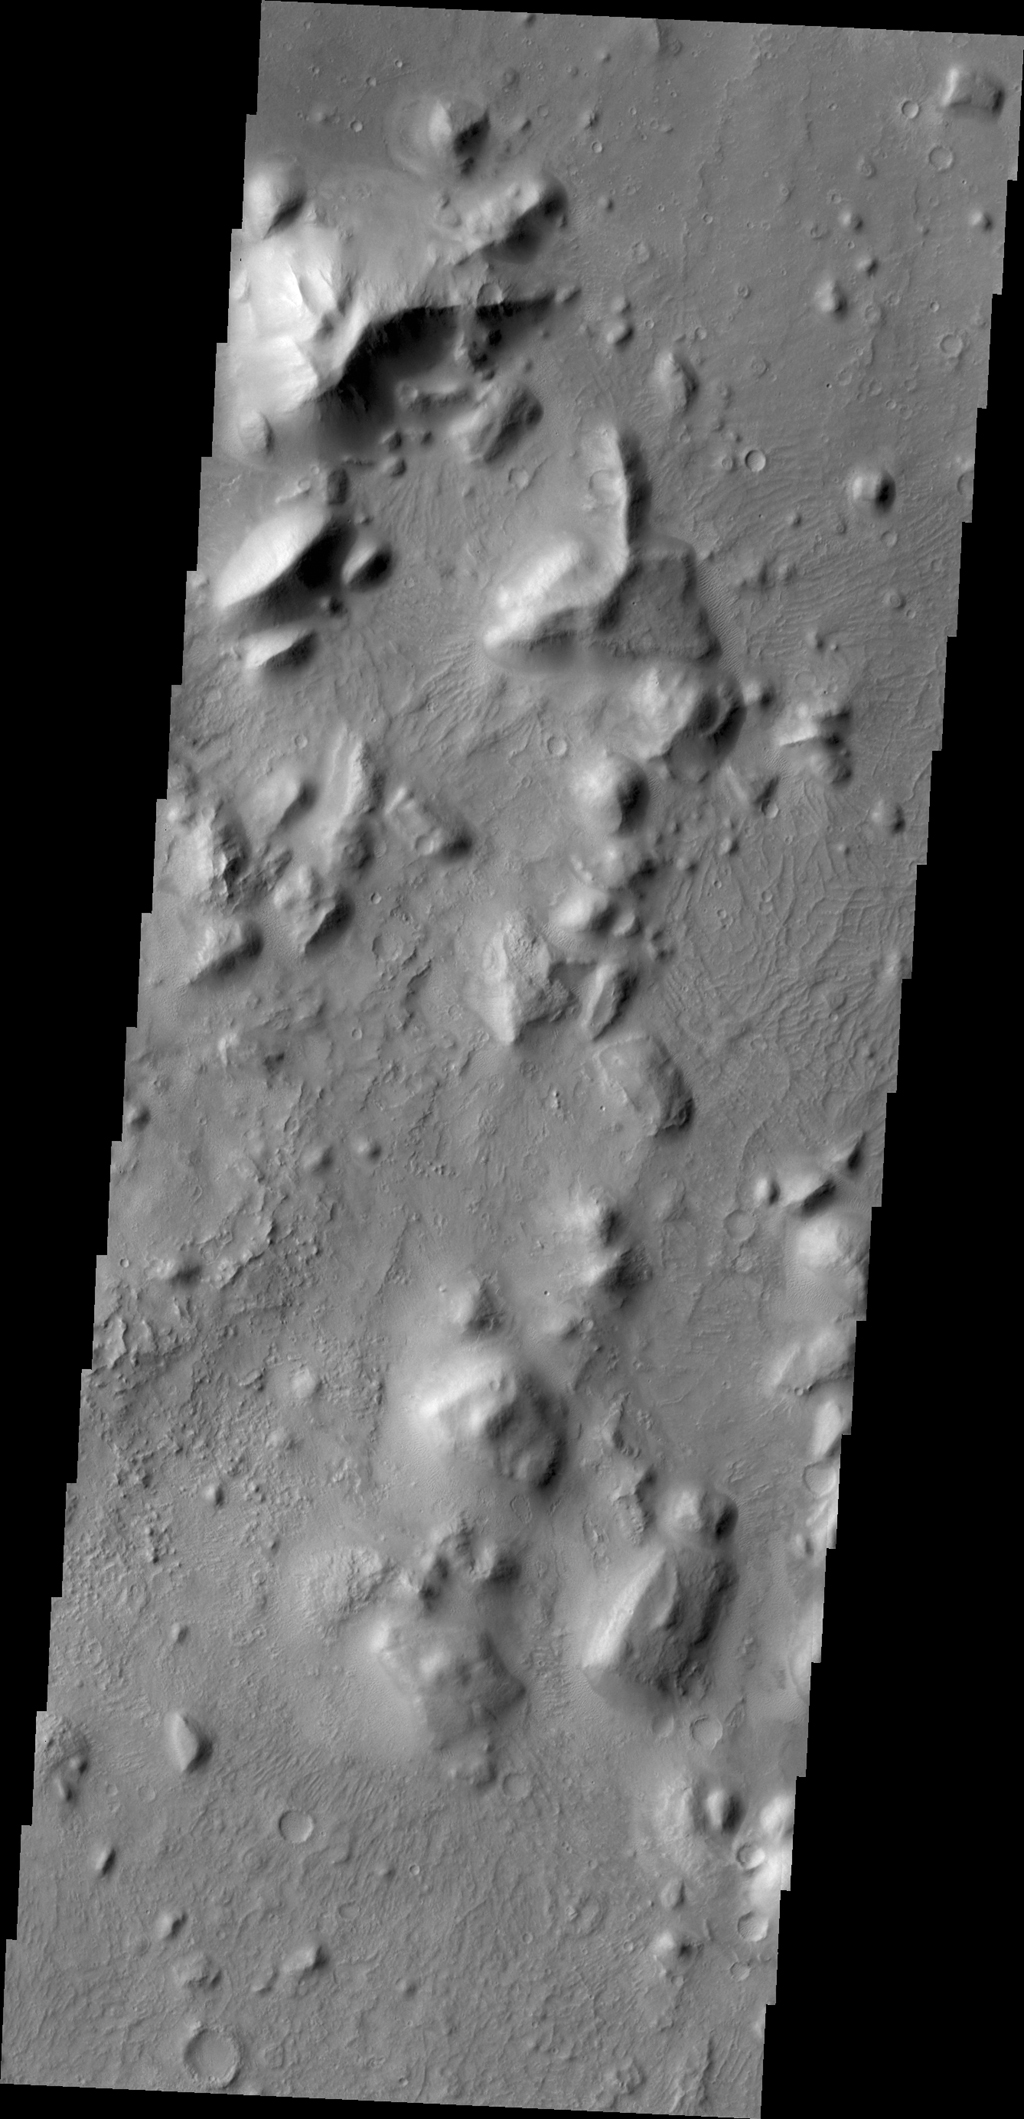 Between the highlands of Terra Cimmeria and the low plains of Elysium Planitia and Nepenthes Planum lies the rugged region called Nepenthes Mensae as seen by NASA's 2001 Mars Odyssey spacecraft.